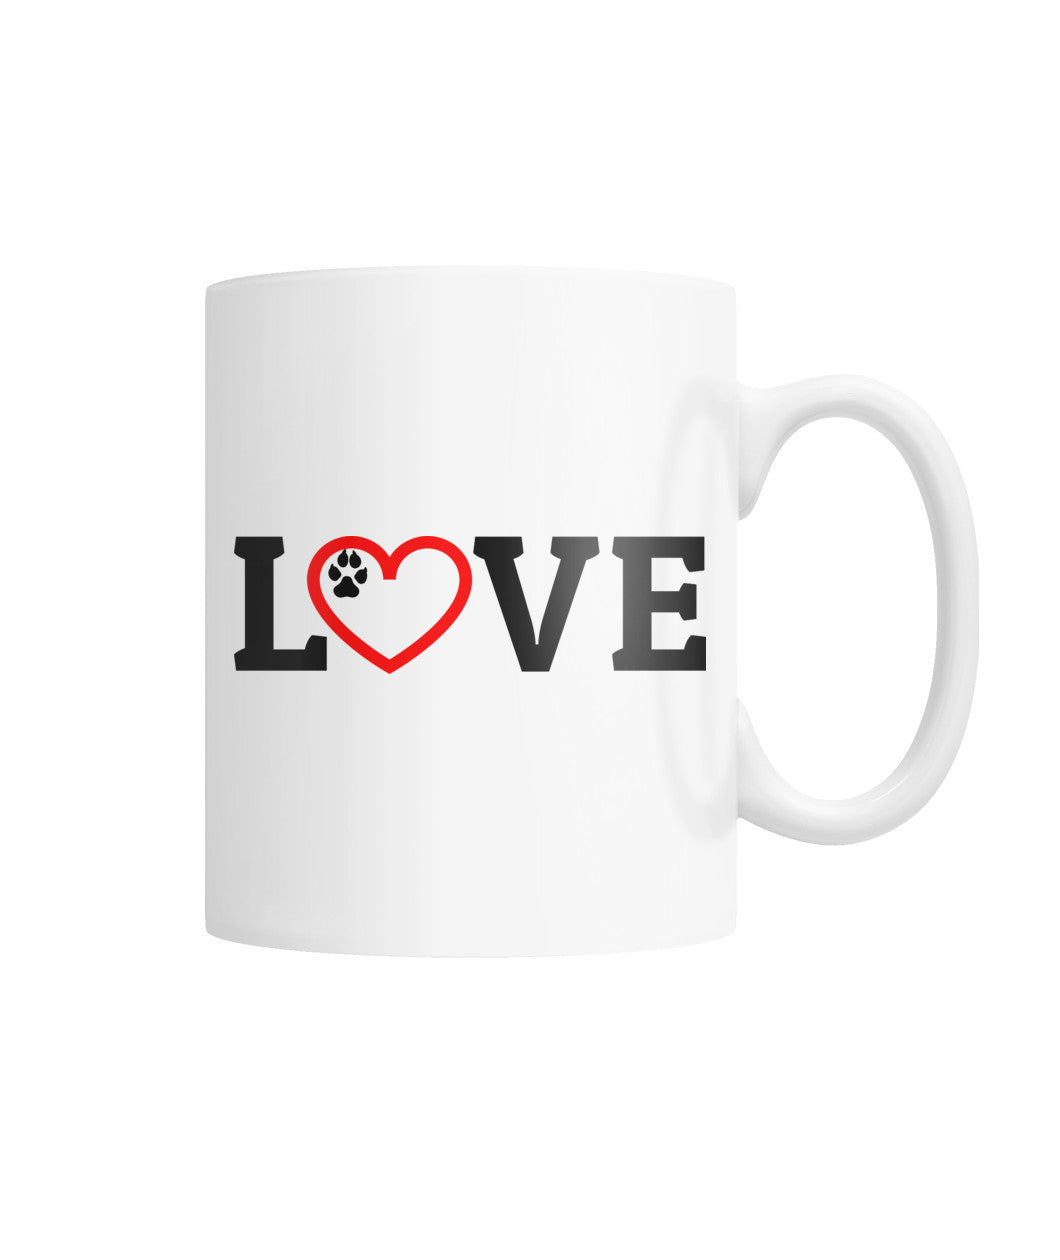 Love Mug White Coffee Mug